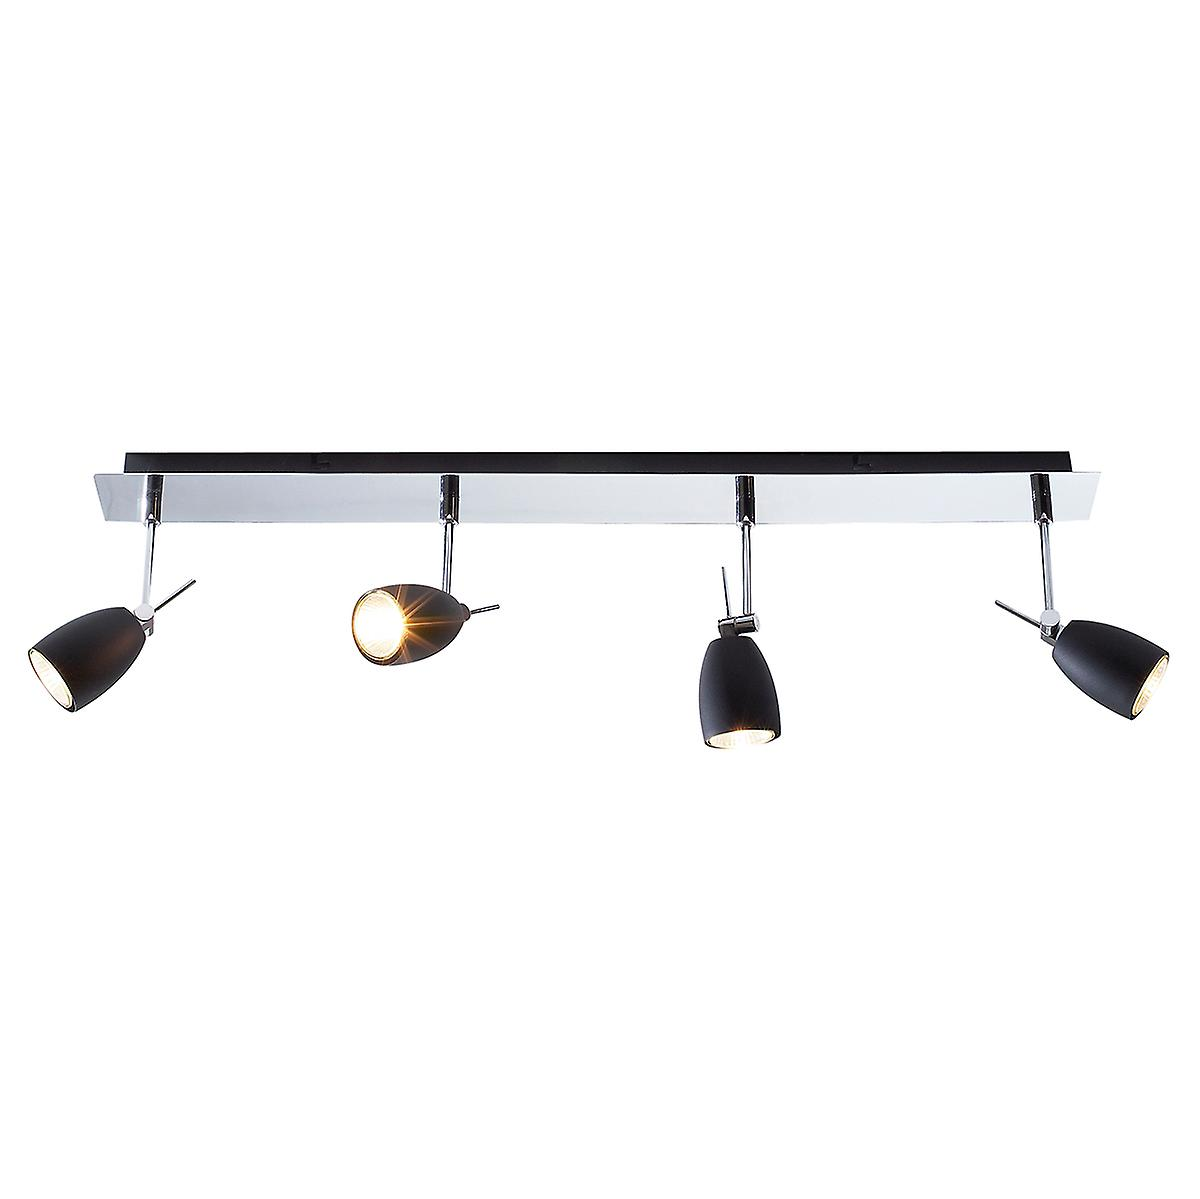 Dar EMP0450 Empire Modern Polished Chrome 4 Bar Spotlight With Black Shades